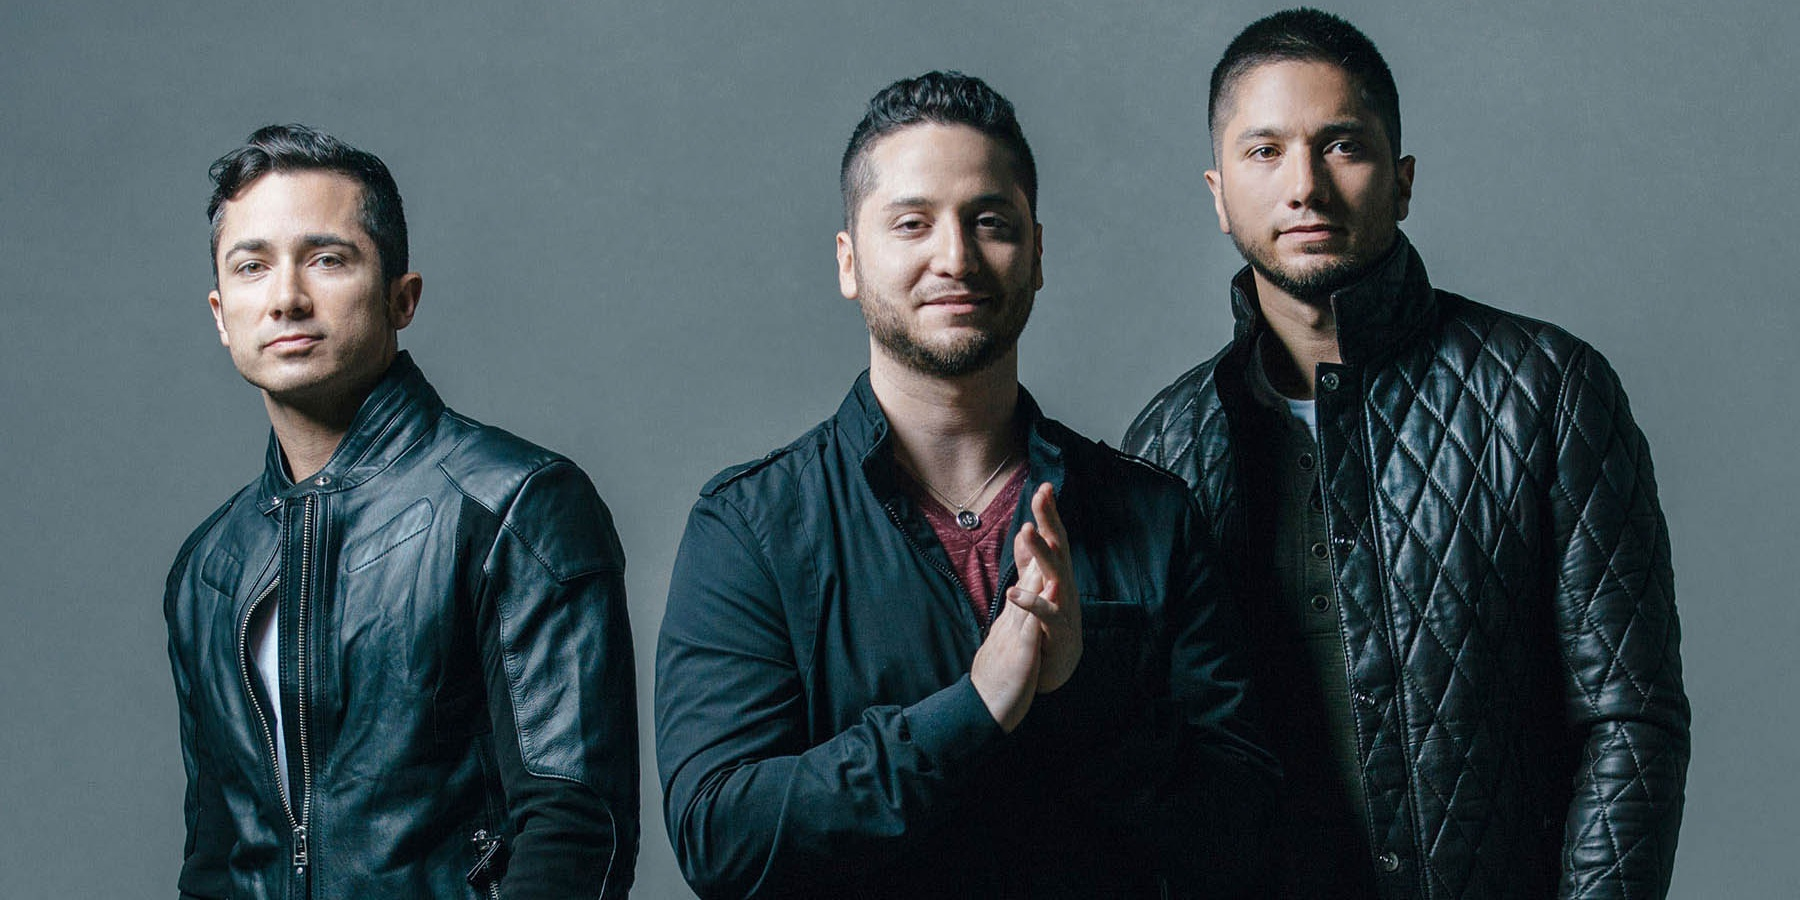 Ticketing details for ChillFest @ The Green featuring Boyce Avenue, Charlie Lim, John Allred and more announced